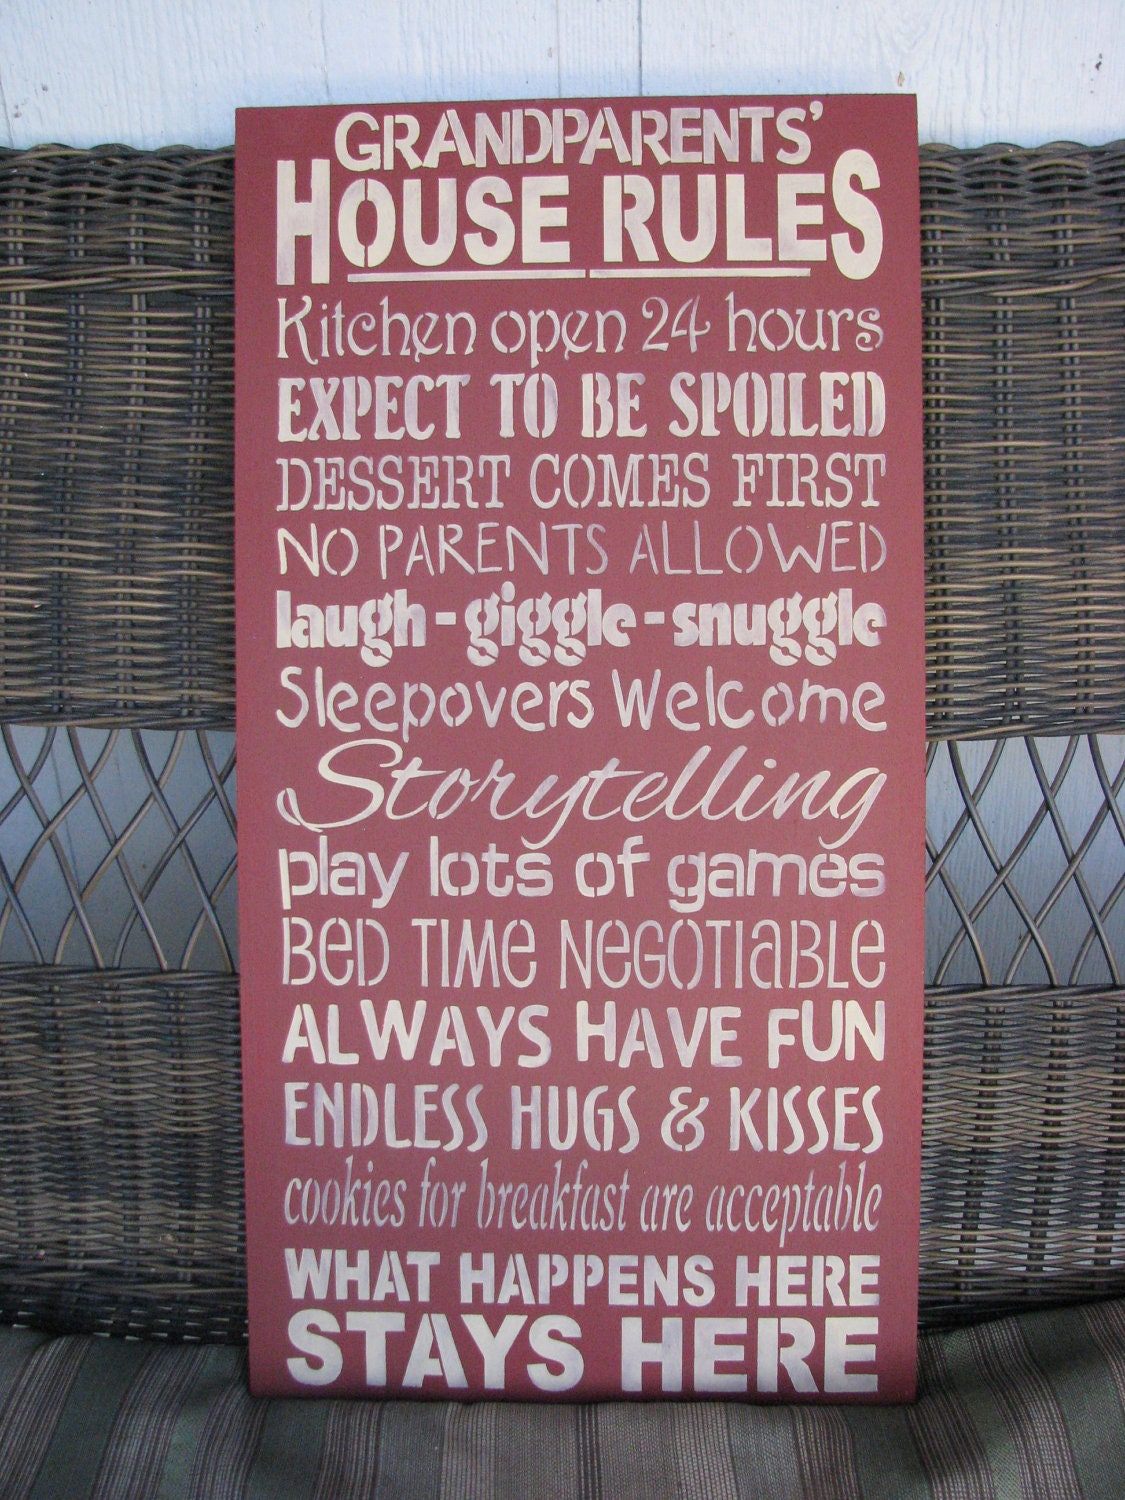 Grandparents House Rules Signcustom By Taylorsboutiquesigns. Allergic Reaction Itchy Bumps. Oral Roberts University Baseball. Beauty Schools In Las Vegas 0 Credit Offers. Definition Of Surface Current. No Down Payment Car Insurance. Fox Sports Ohio Direct Tv Scientist Lyrics. Car Accident Attorney Chicago. All In The Family Movers The Wonder Years Cast